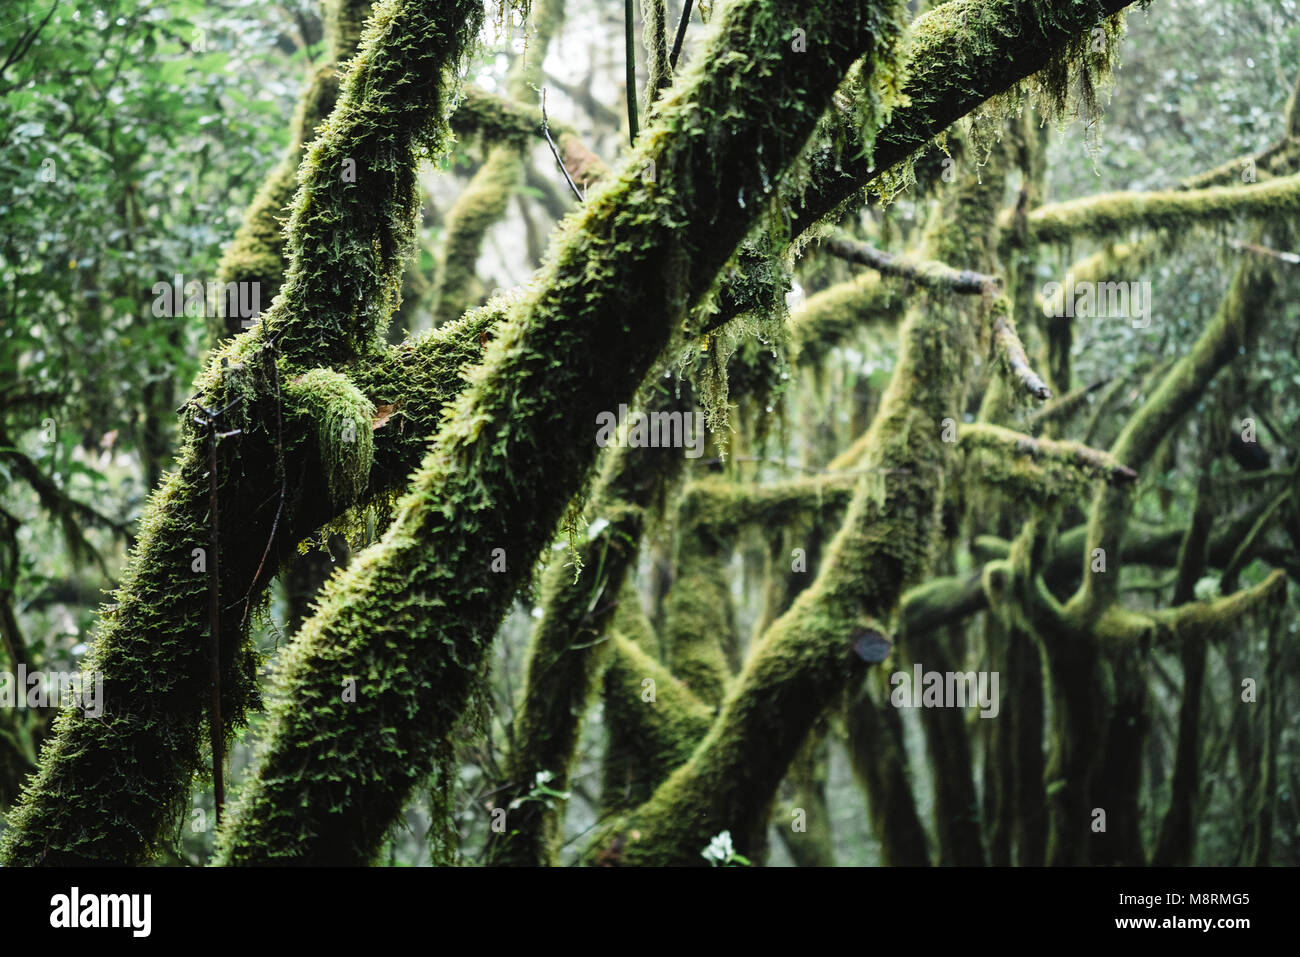 Close-up of mossy branches of trees in forest at Garajonay National Park Stock Photo